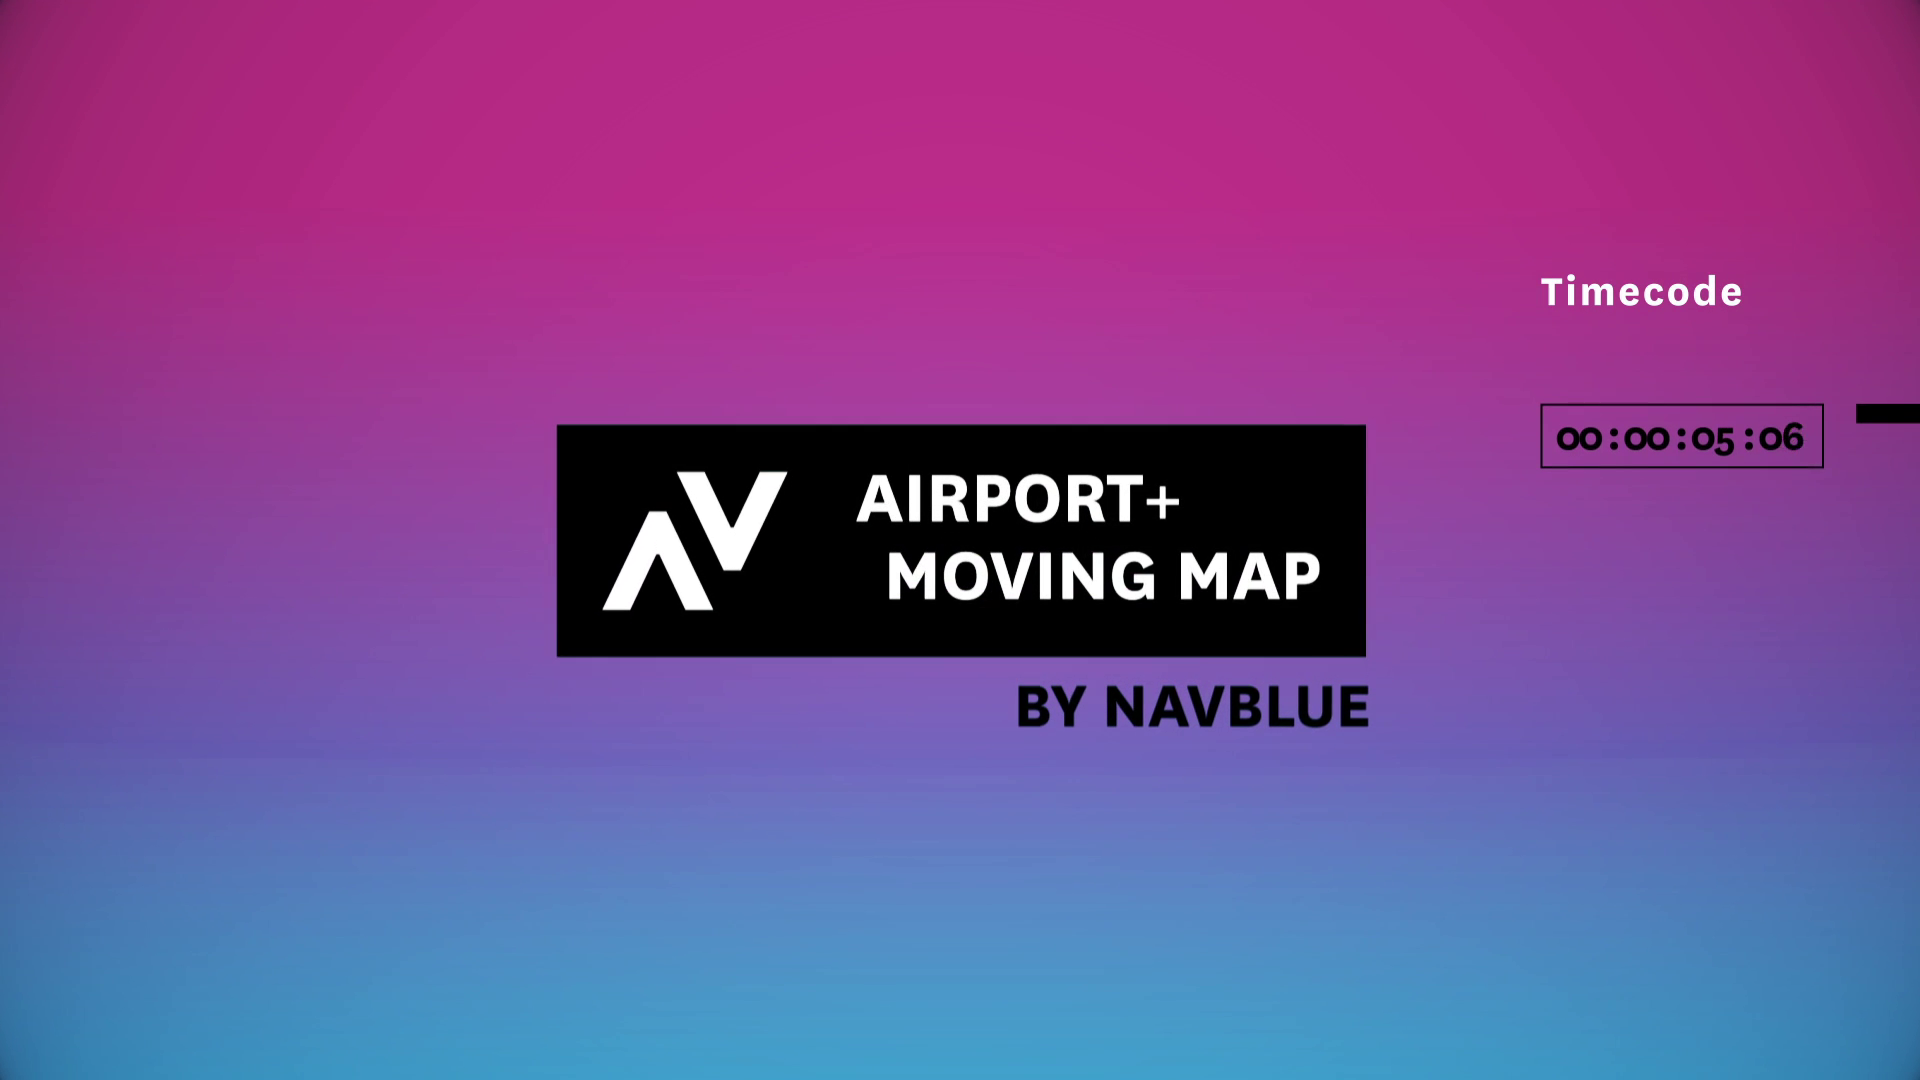 NAVBLUE Airport+ Moving Map